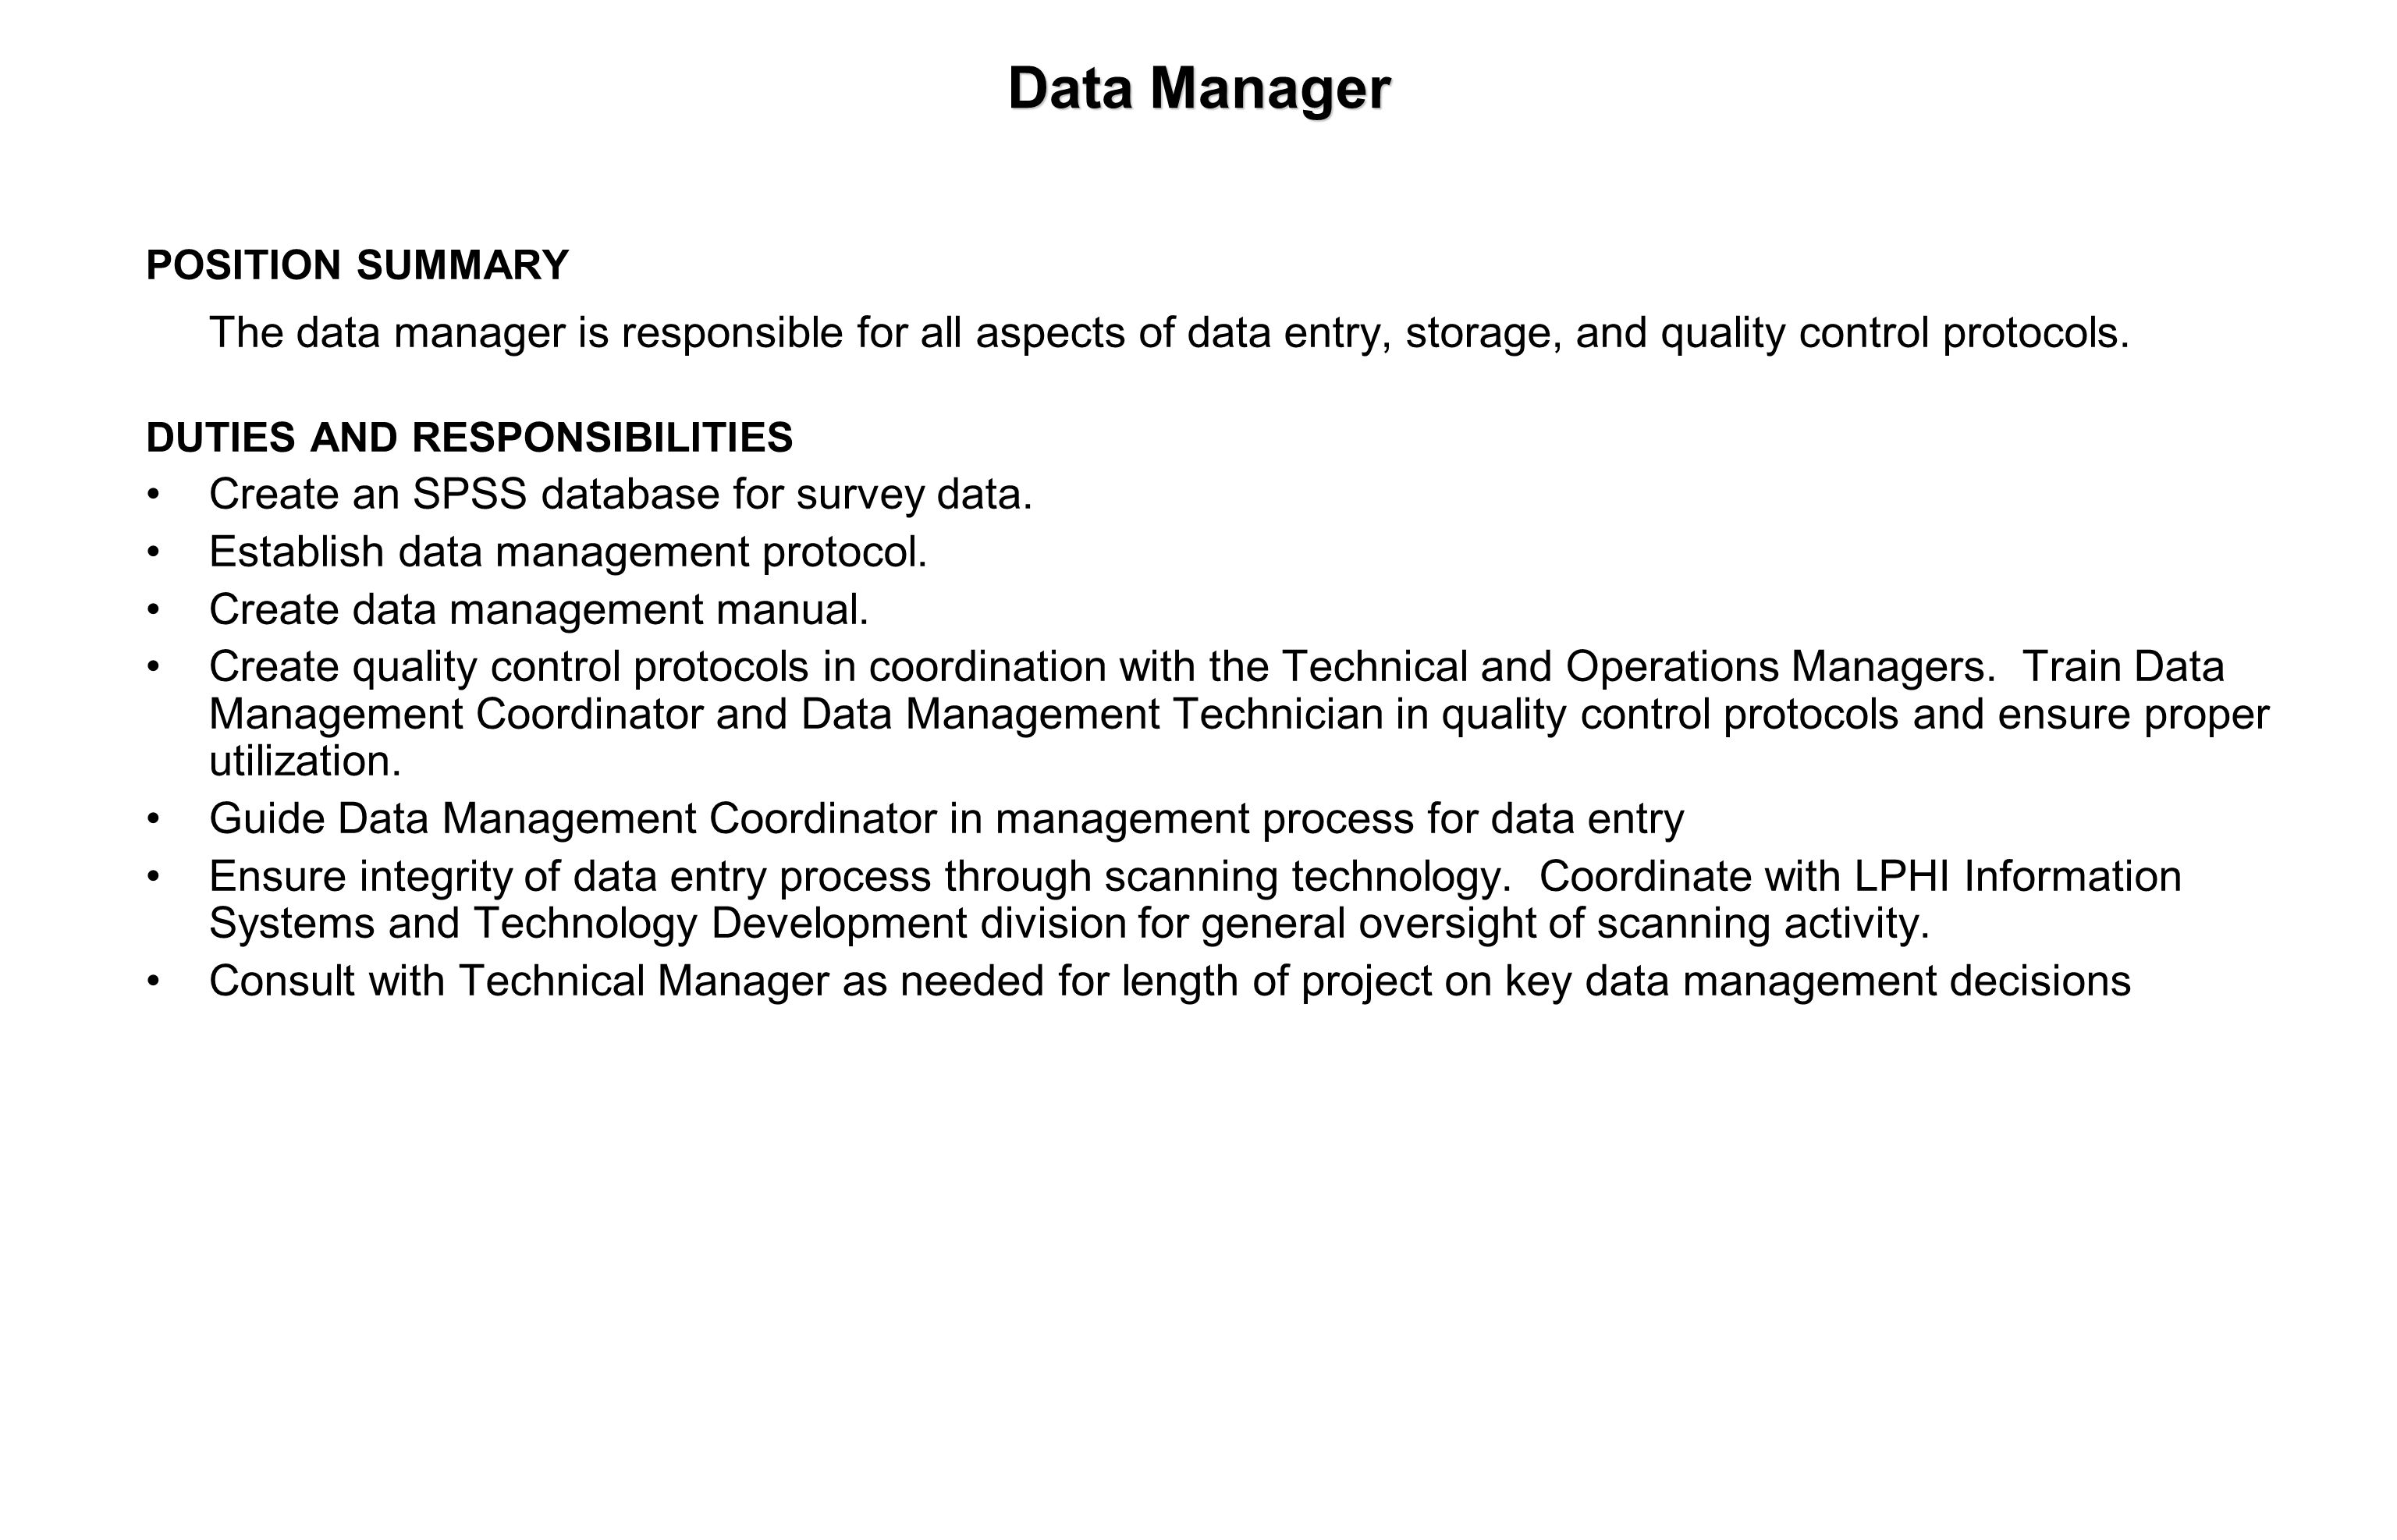 Data Manager POSITION SUMMARY The data manager is responsible for all aspects of data entry, storage, and quality control protocols.